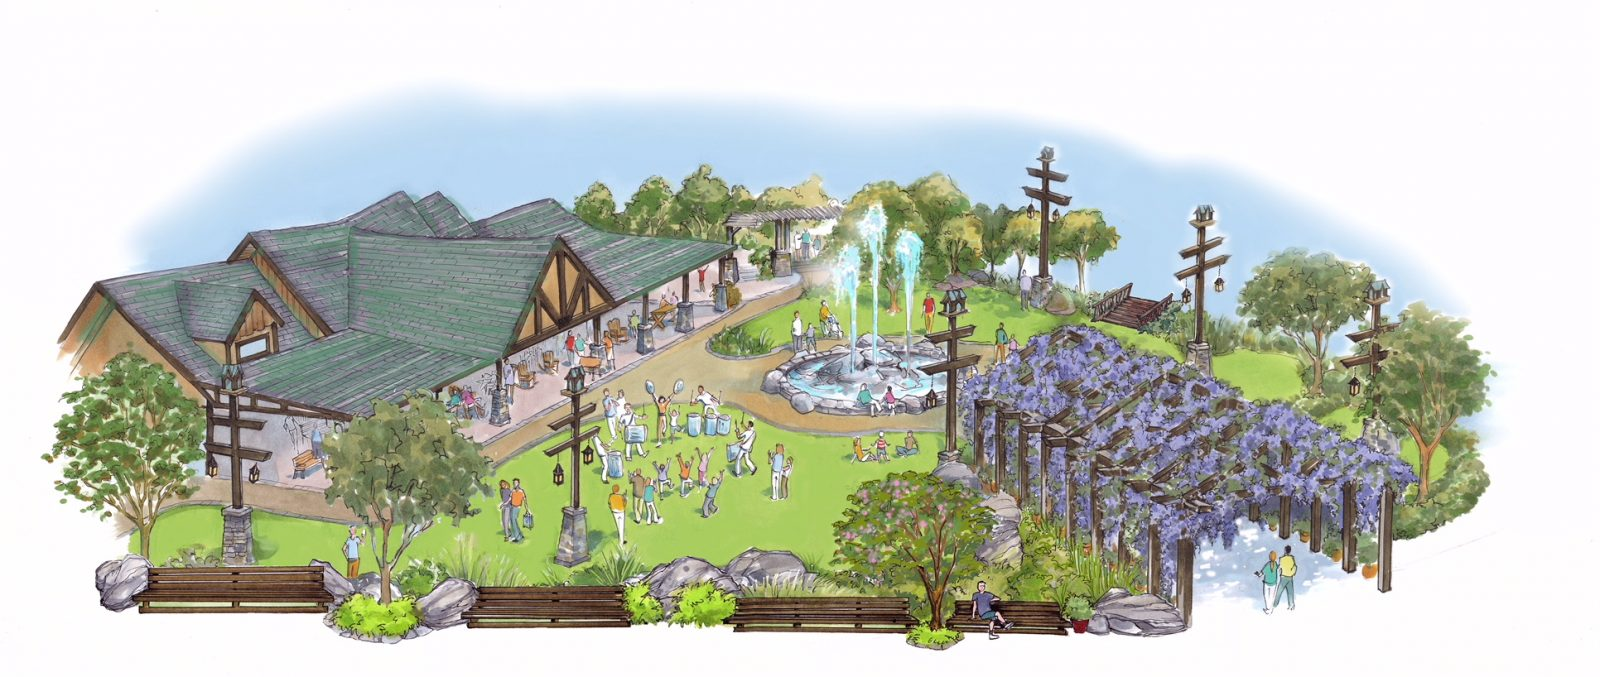 New show venue for Dollywood 2018 season